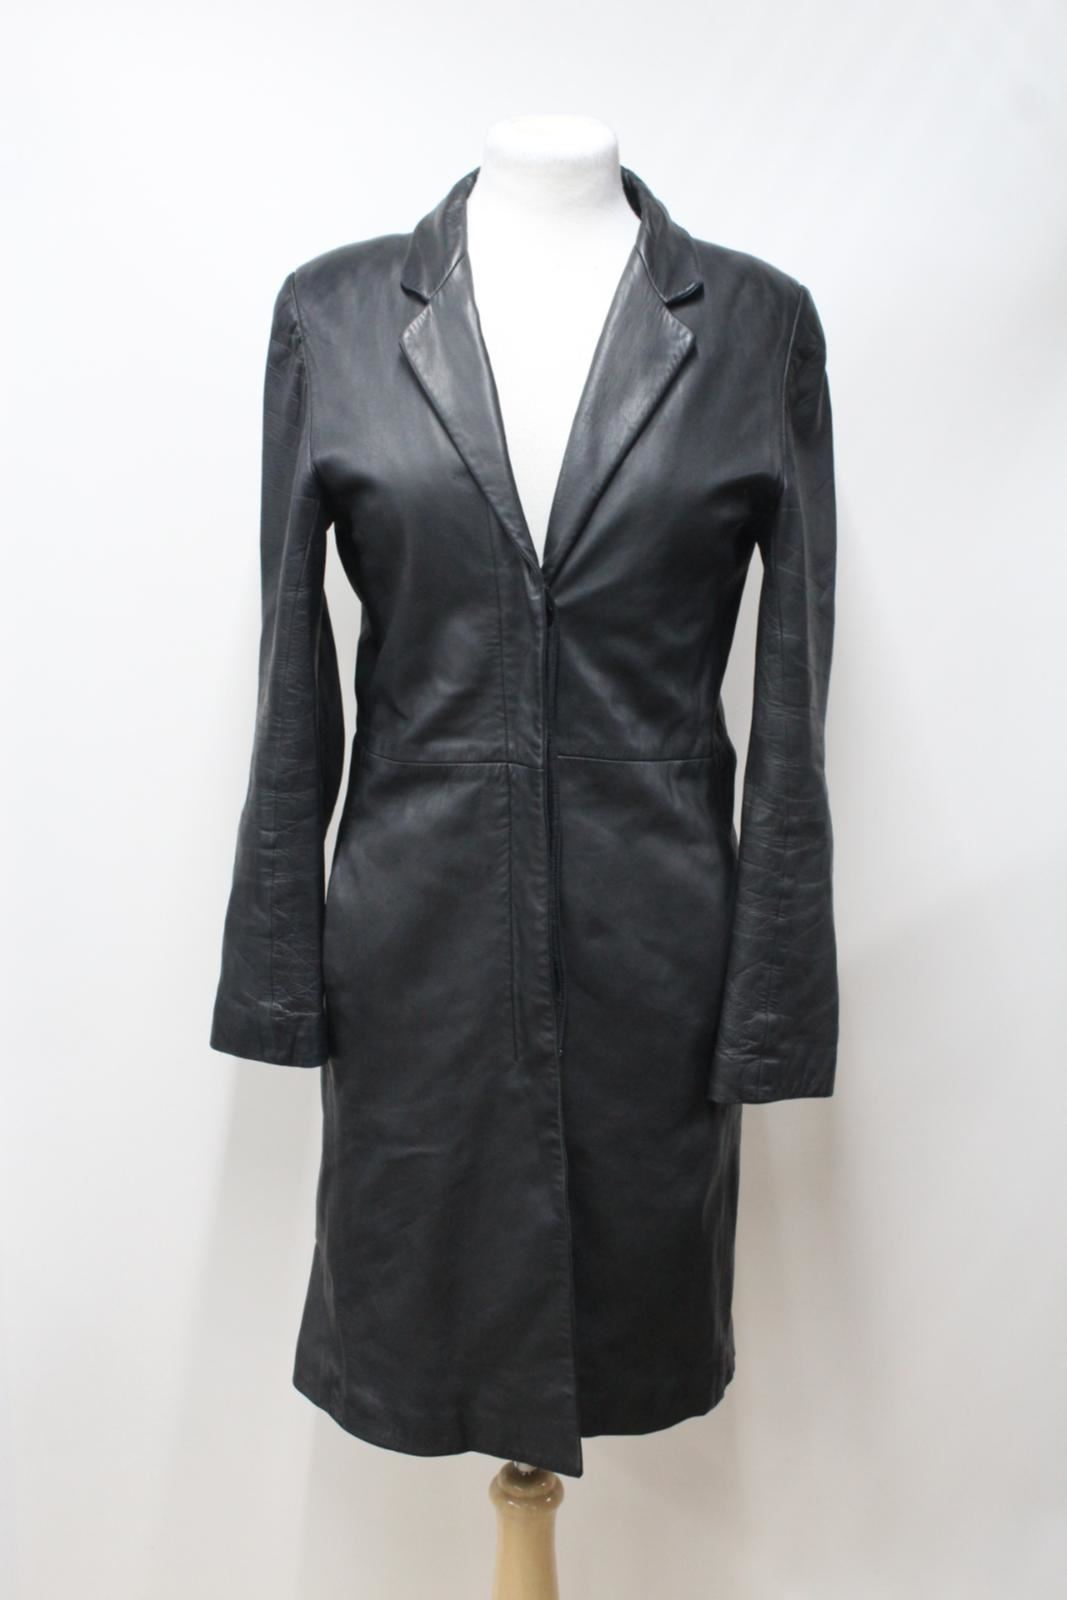 JIGSAW-Ladies-Black-Leather-Vintage-Notch-Collar-Button-Up-Coat-Approx-S